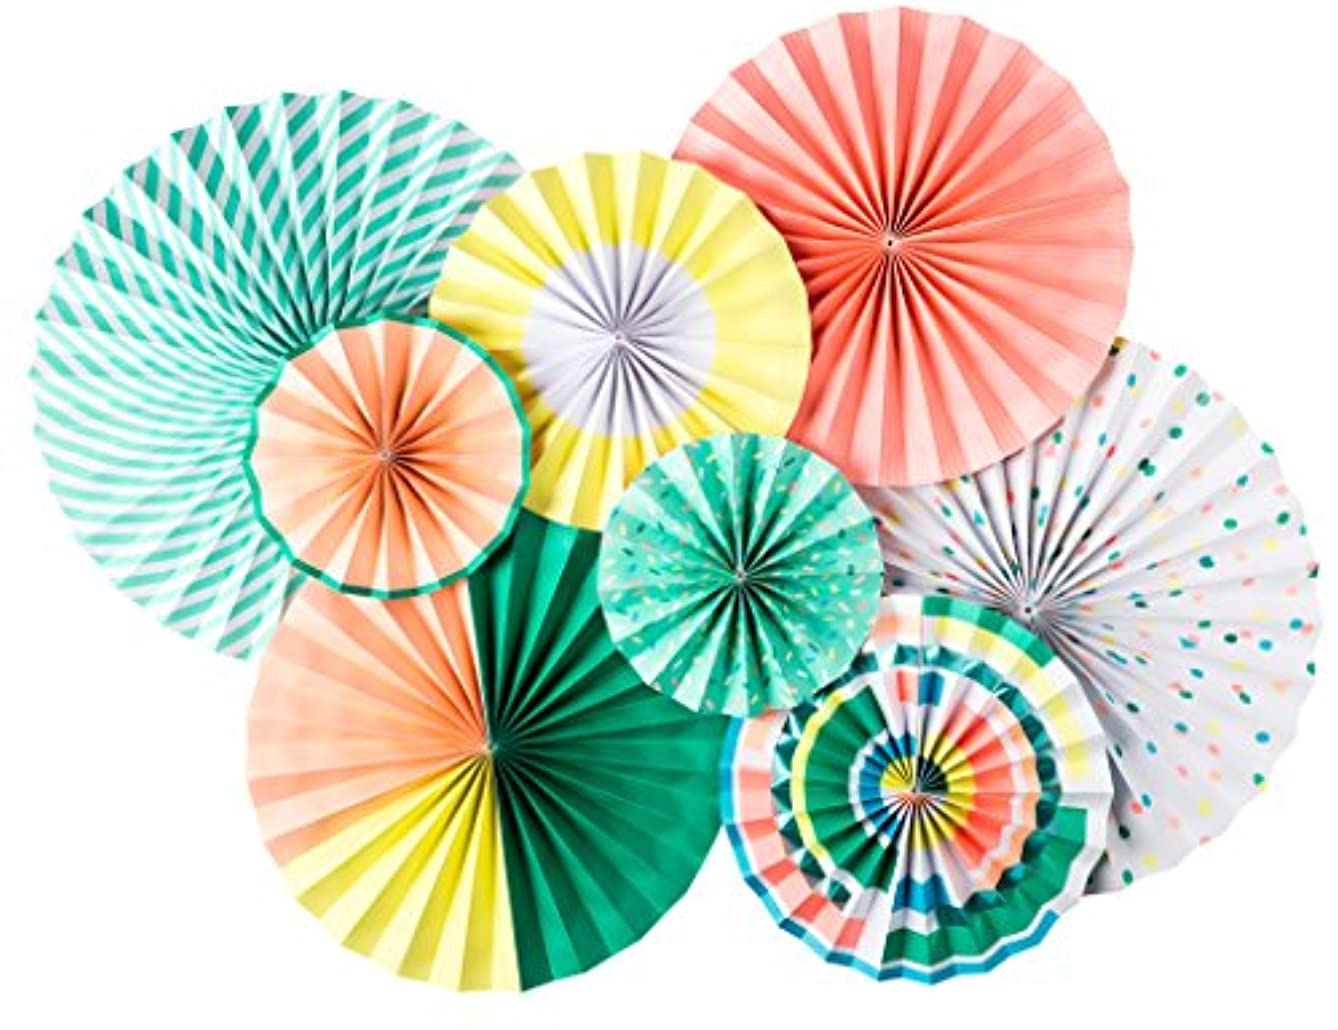 My Mind's Eye - Fancy Double-Sided Neon Paper Party Fans - 8 Count - Decorations